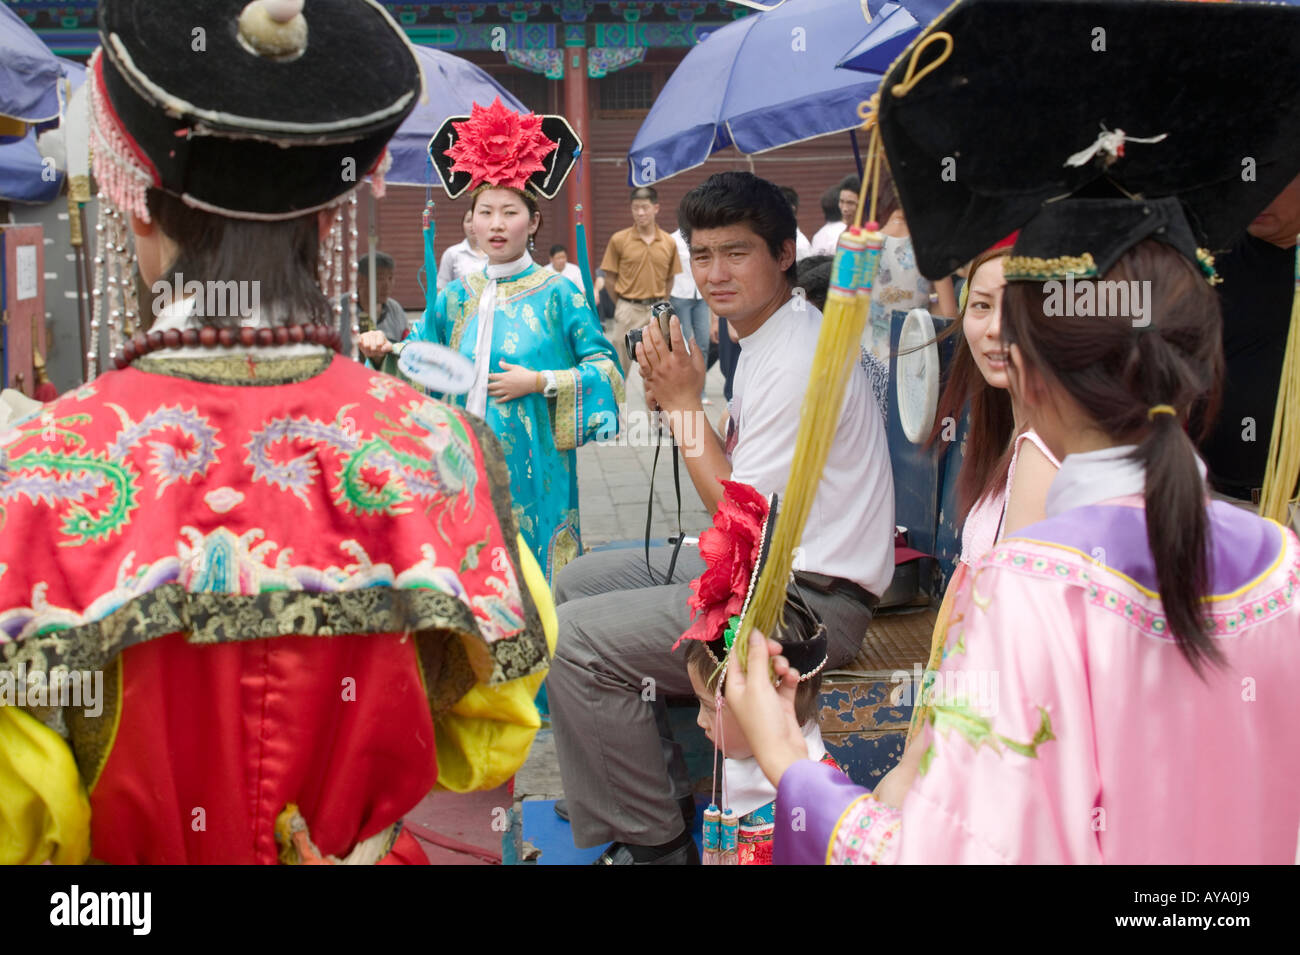 Asia China Beijing Chinese tourists wear imperial era costumes while posing for souvenir snapshots at photo studio near the Gate  sc 1 st  Alamy & Asia China Beijing Chinese tourists wear imperial era costumes while ...